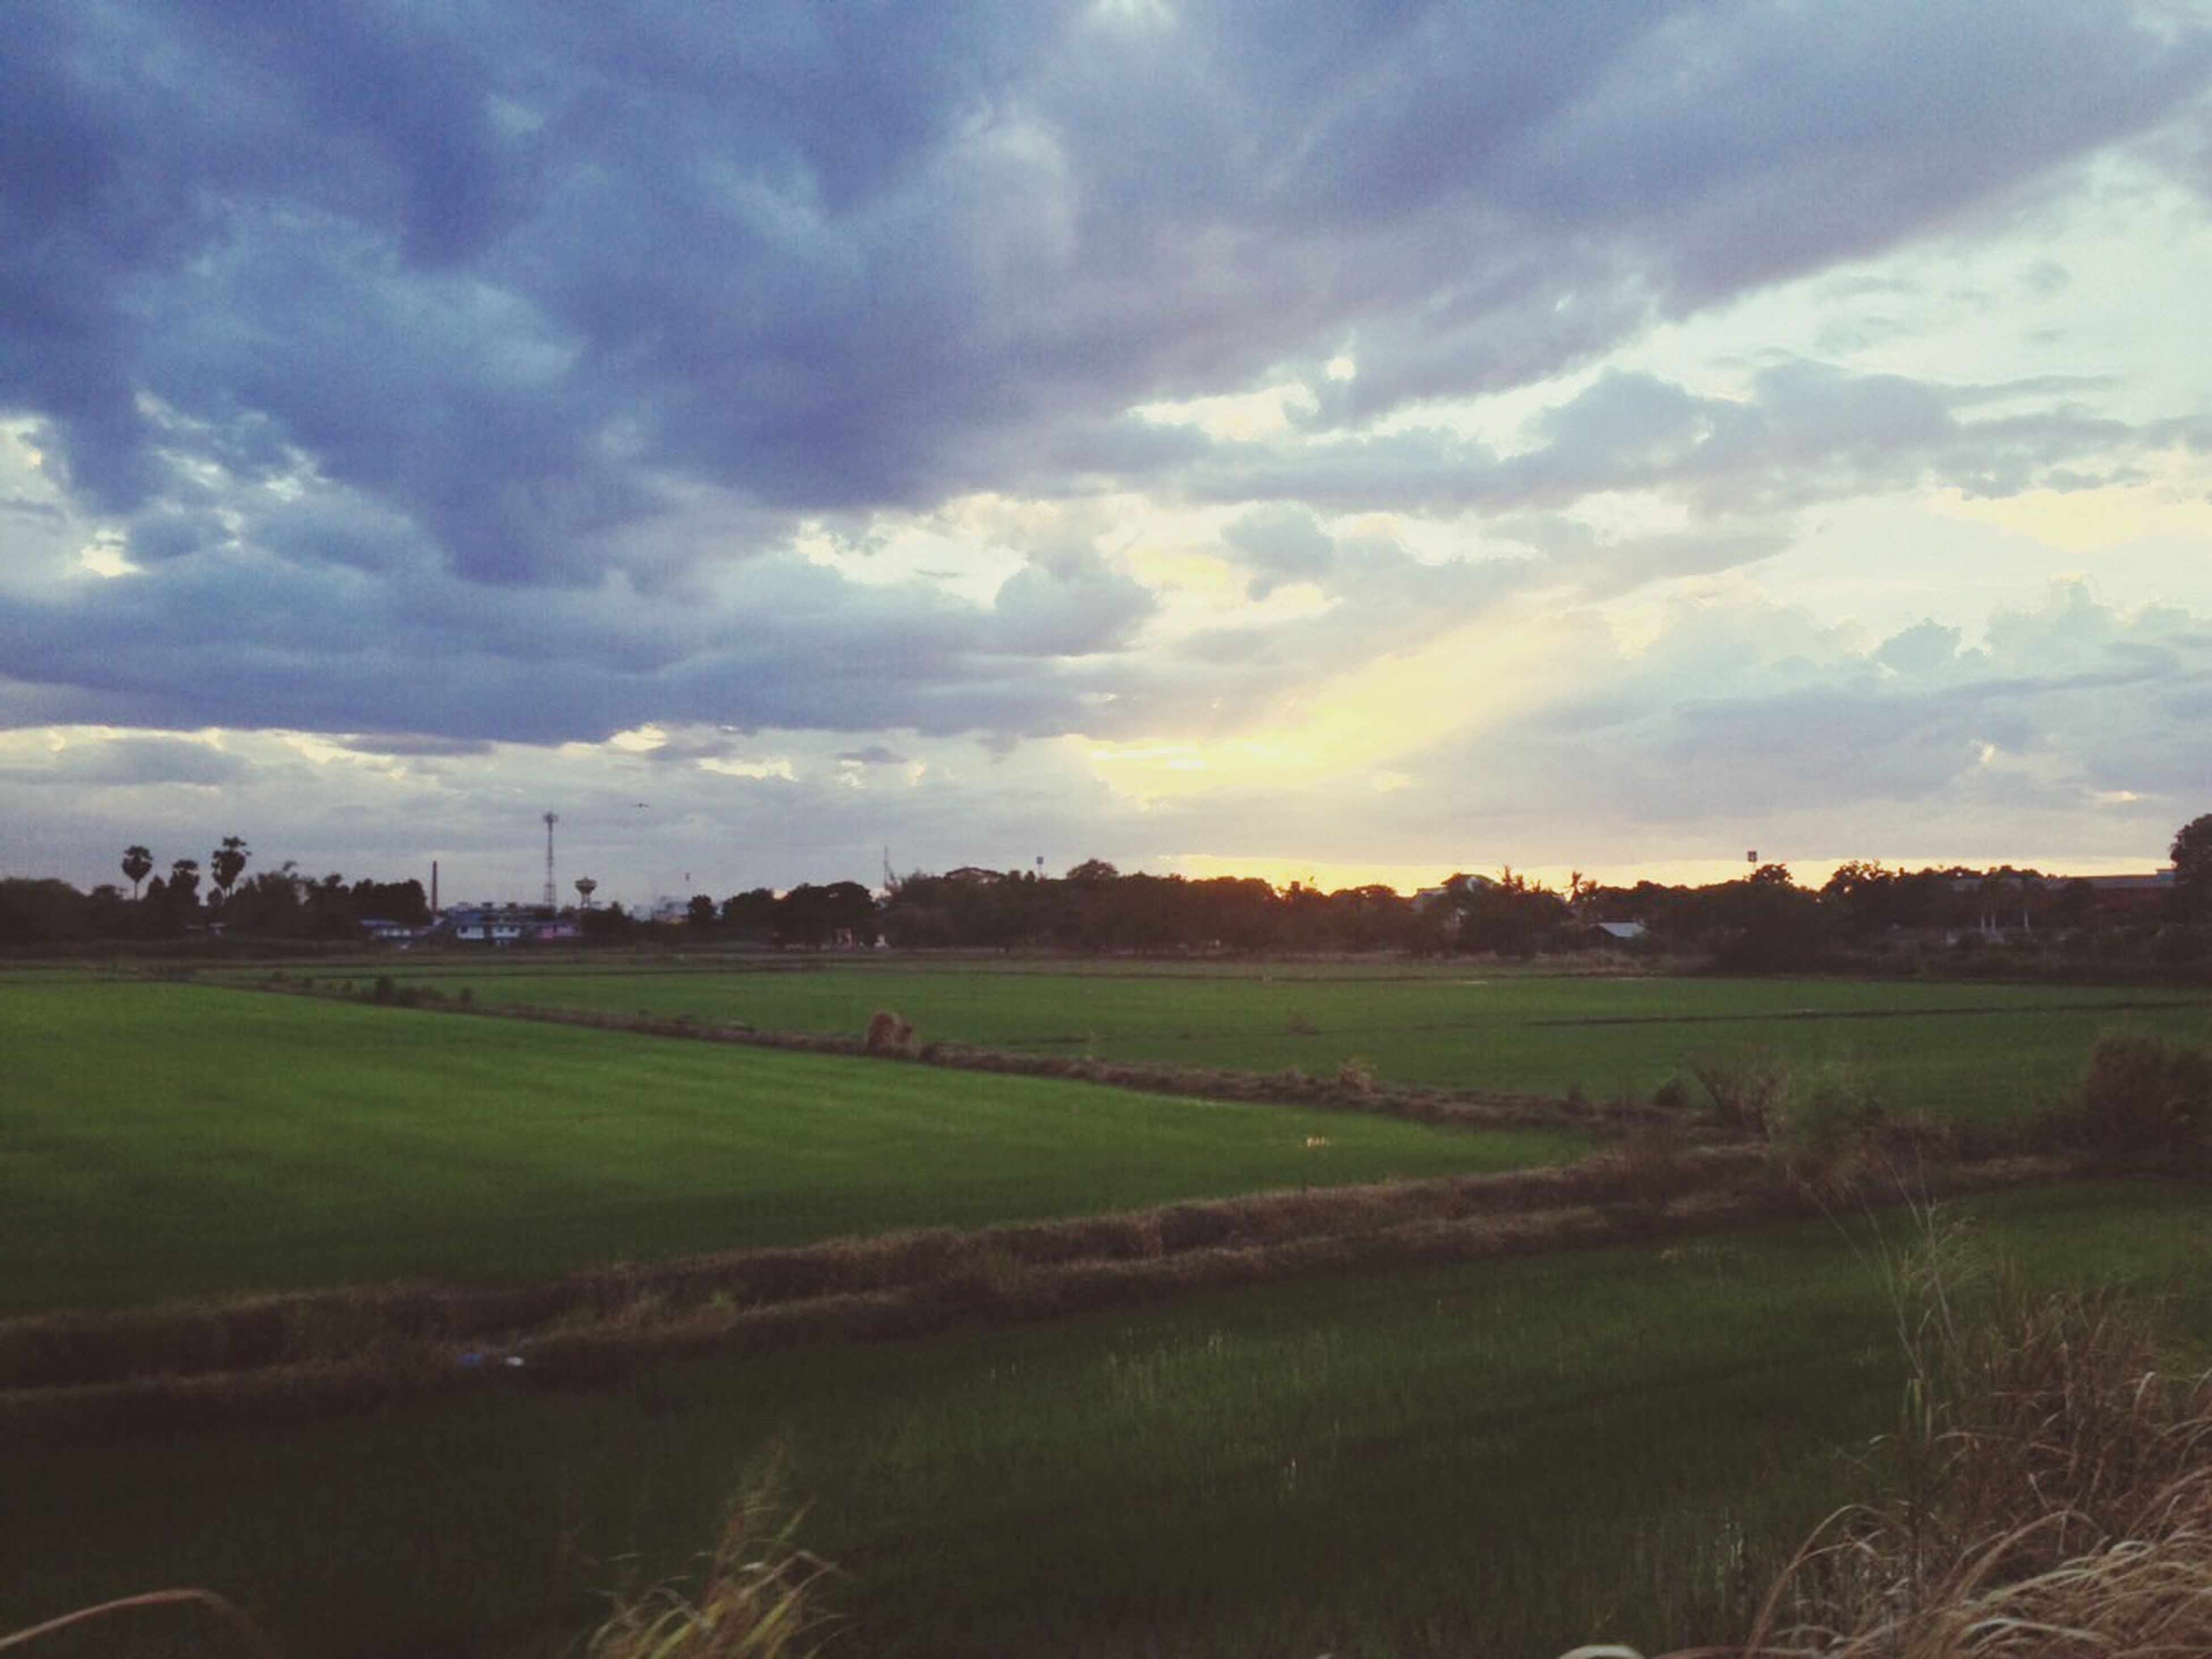 sky, field, landscape, cloud - sky, tranquil scene, tranquility, scenics, grass, beauty in nature, sunset, nature, water, cloudy, rural scene, cloud, idyllic, grassy, growth, river, no people